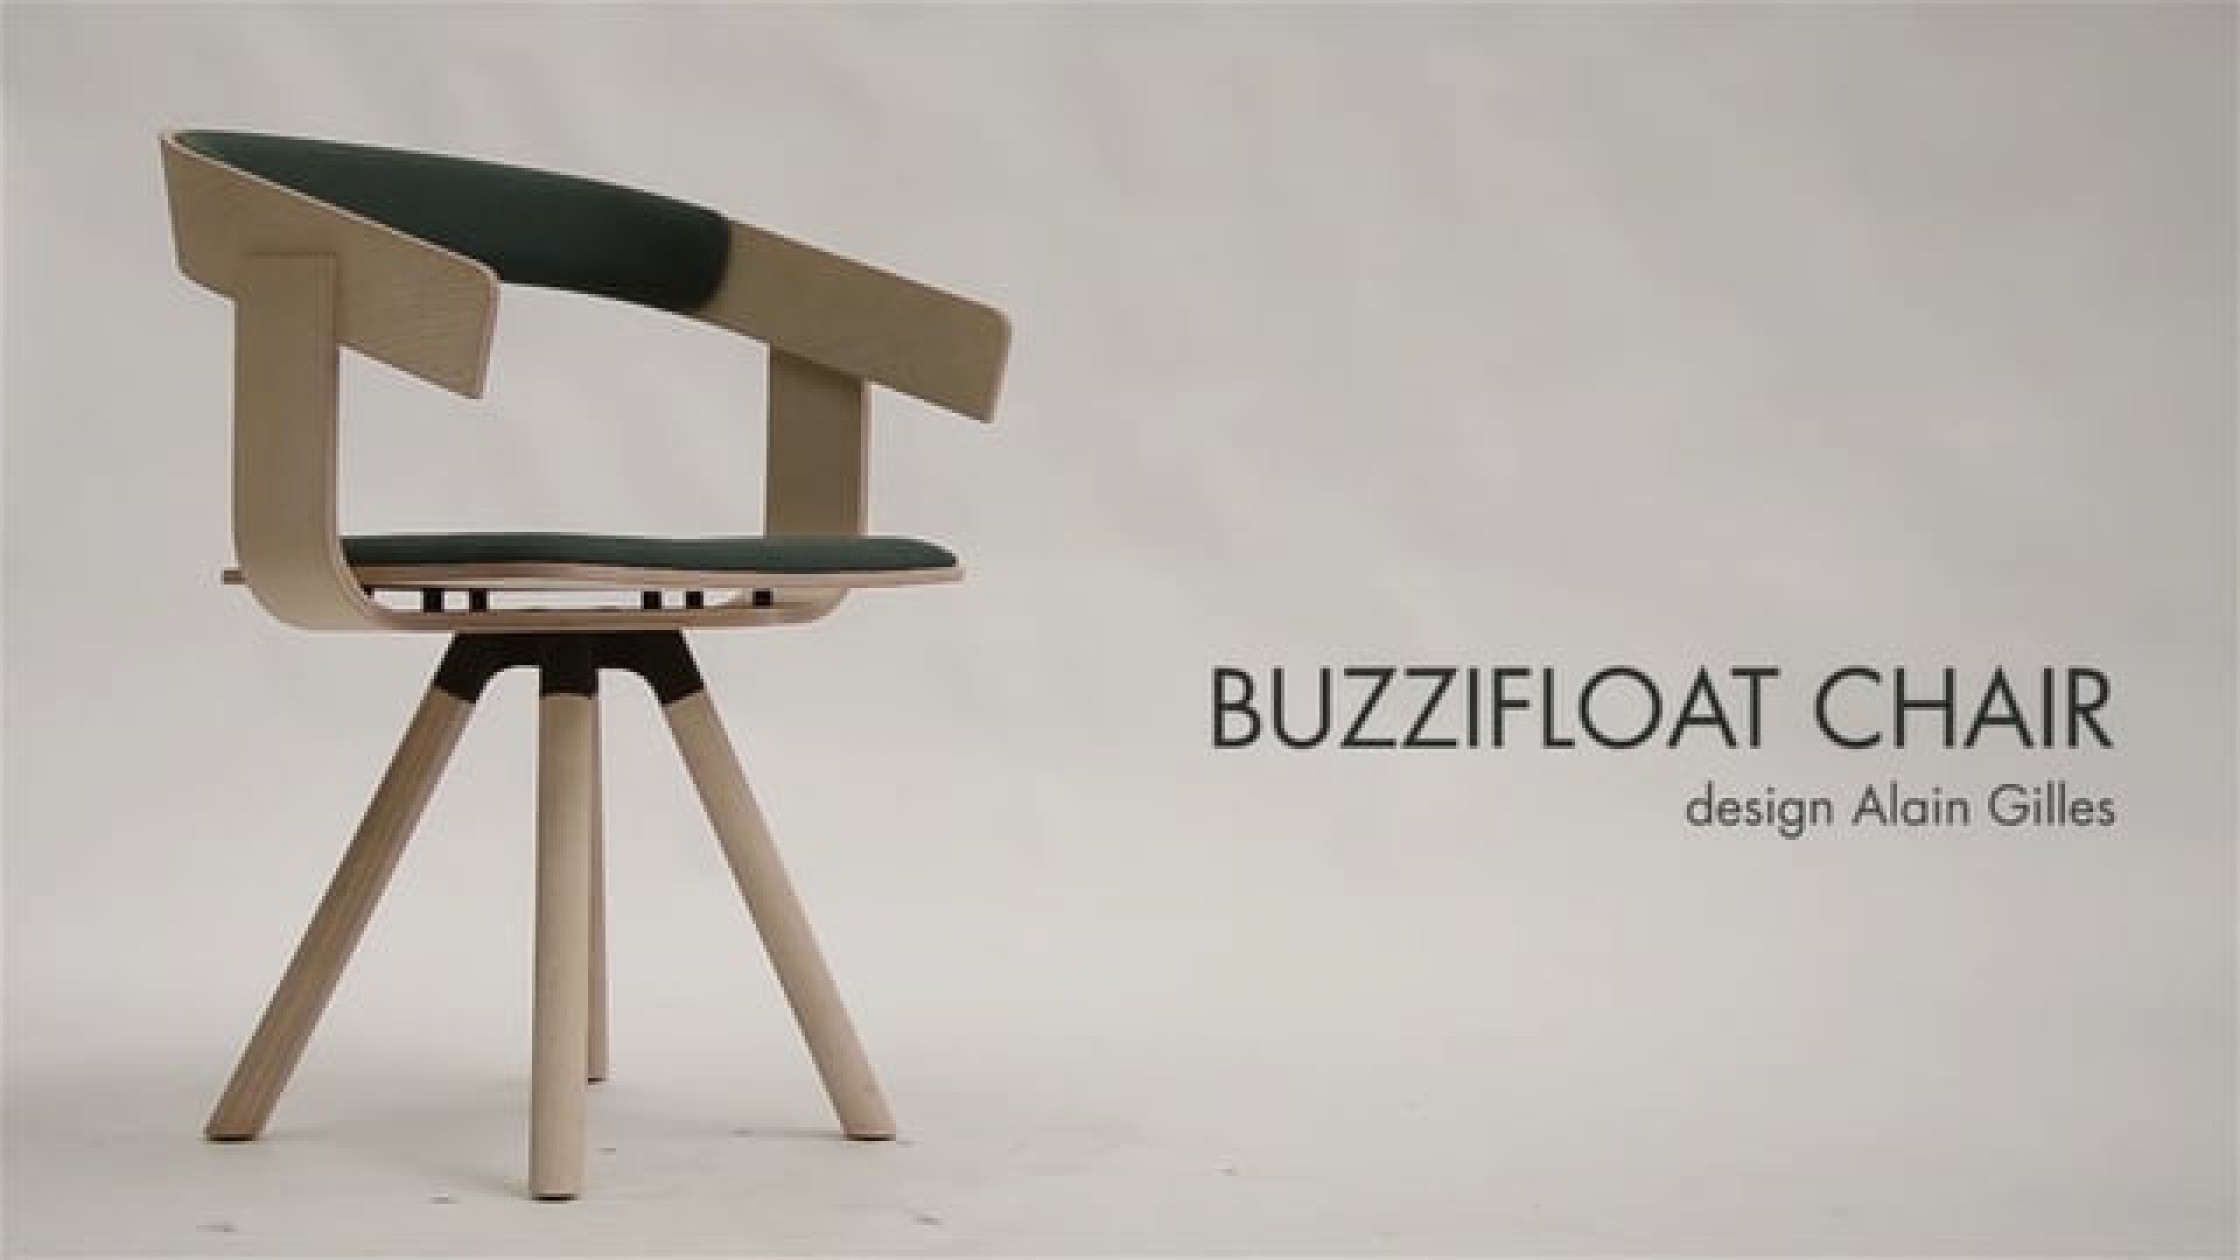 BUZZIFLOAT CHAIR COLLECTION / A Plywood Chair With A Floating Effect